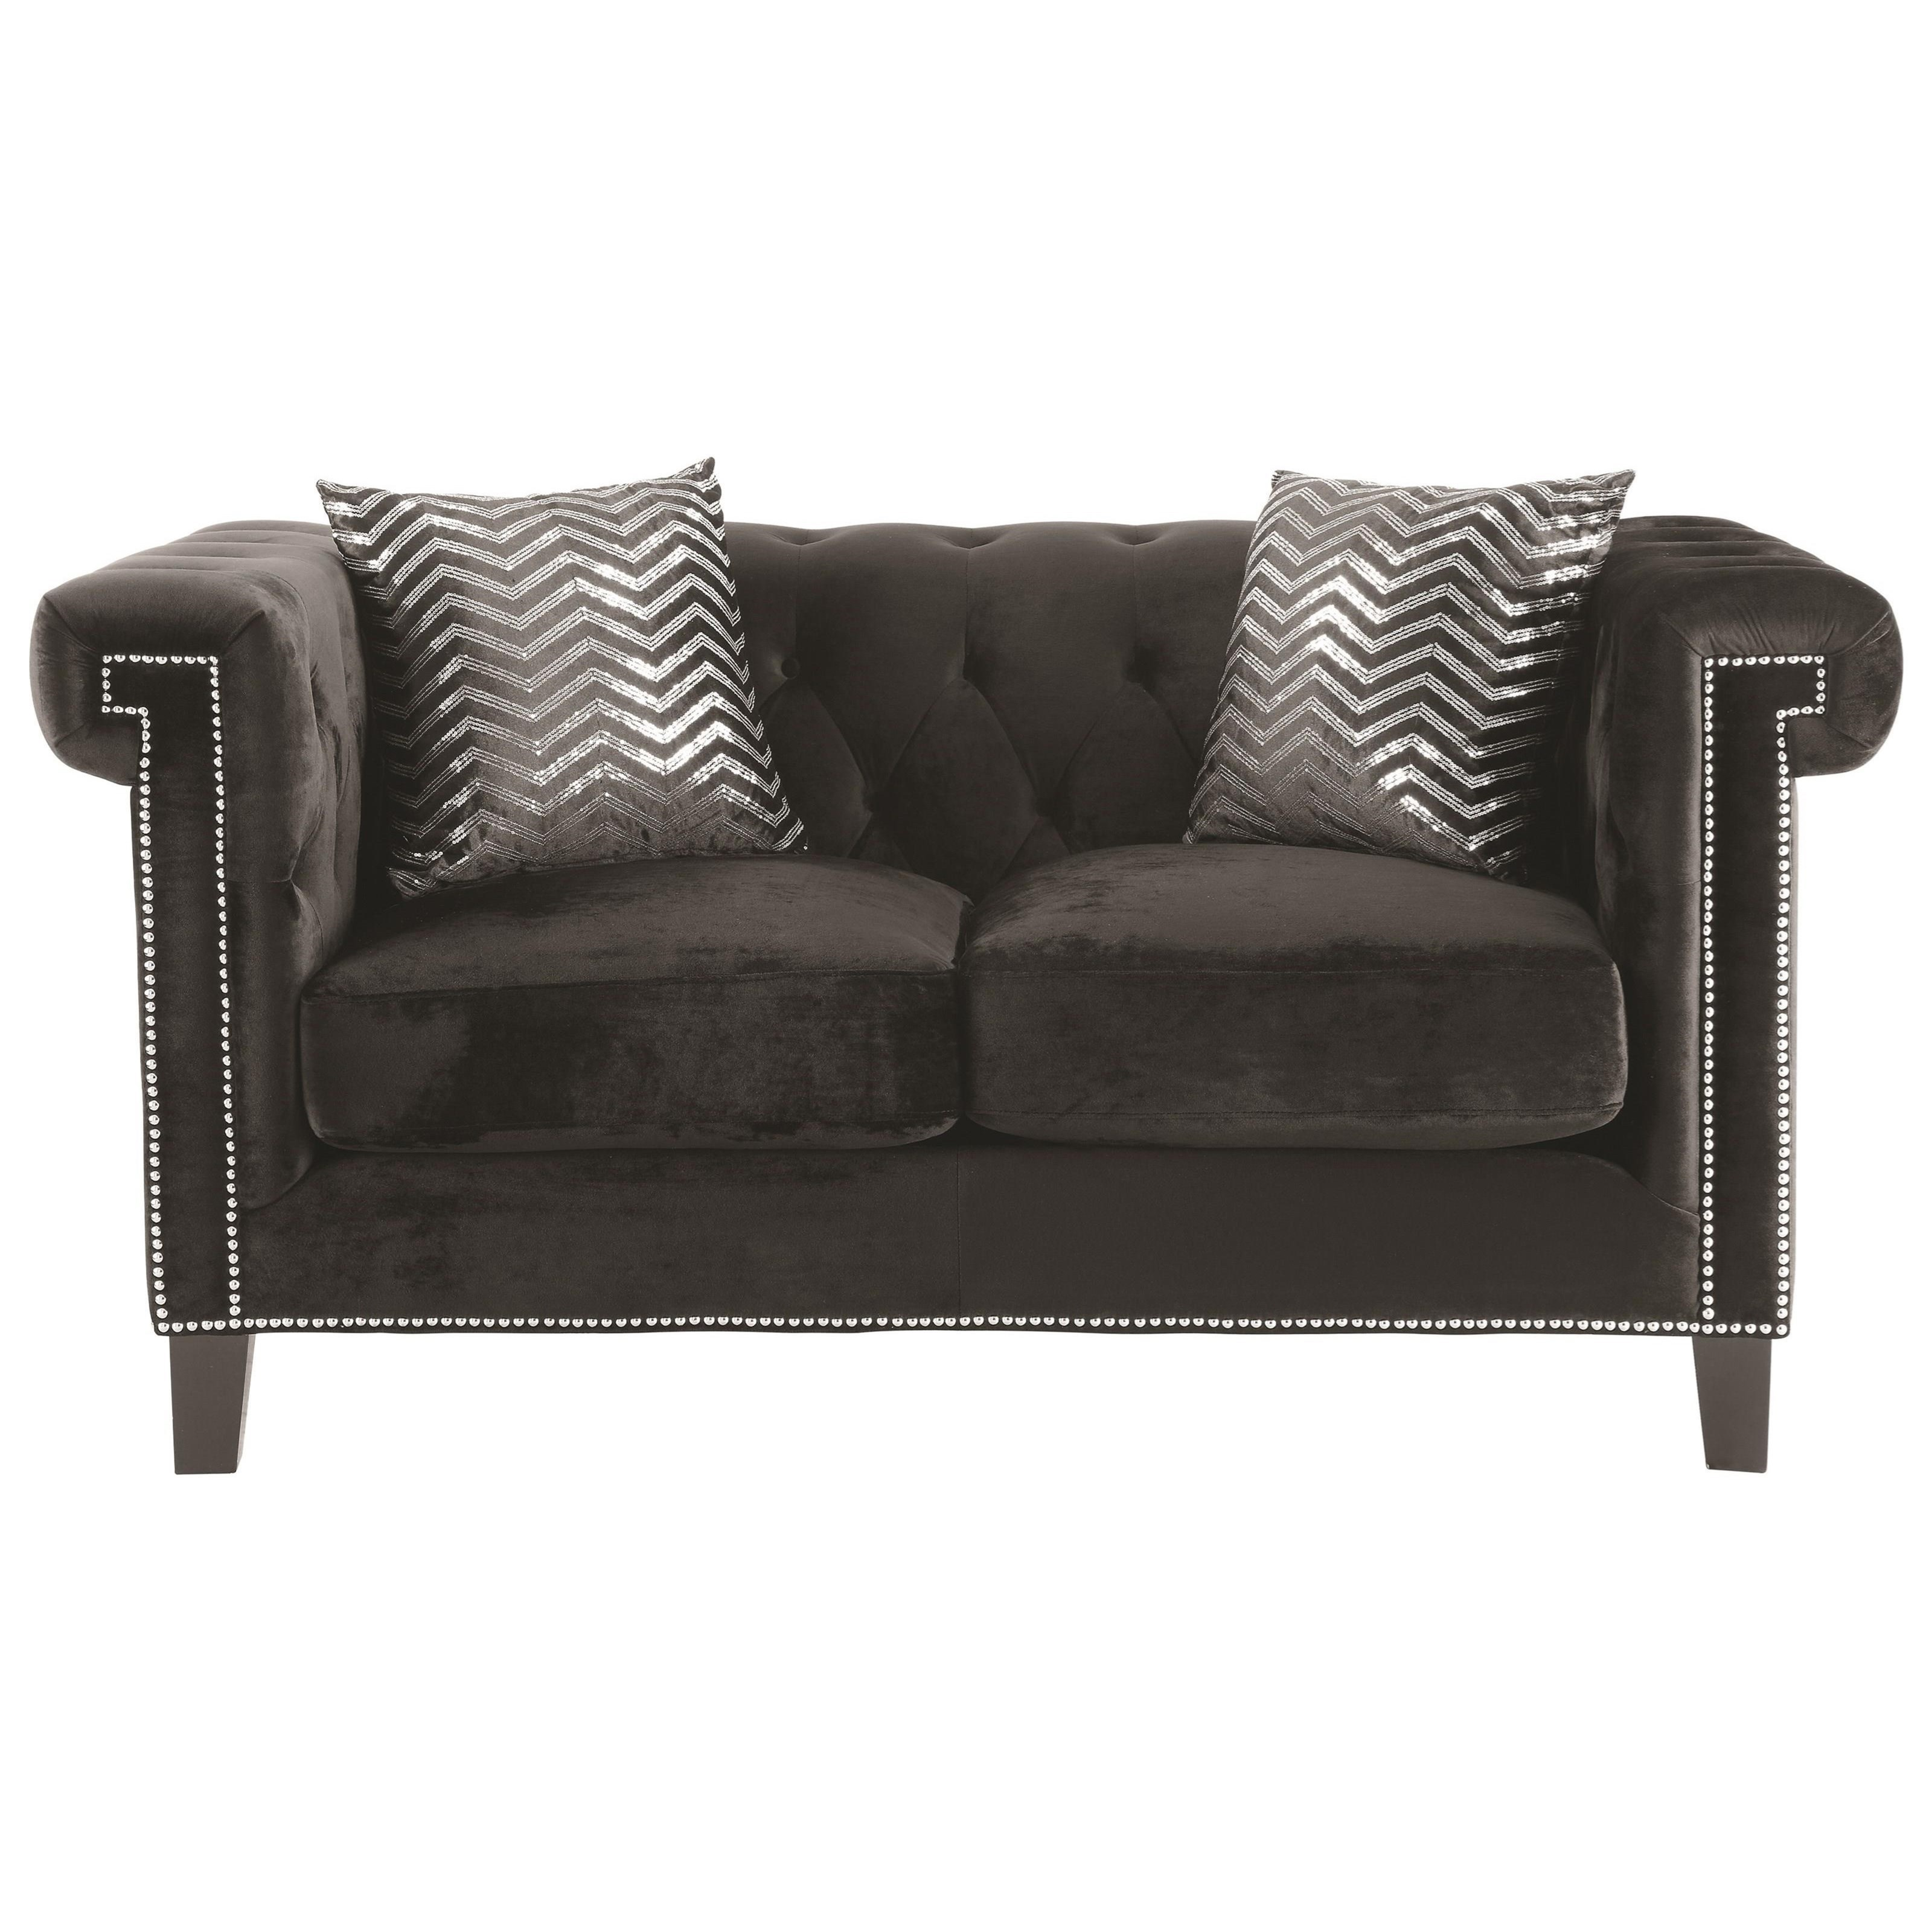 Coaster Reventlow Loveseat - Item Number: 505818